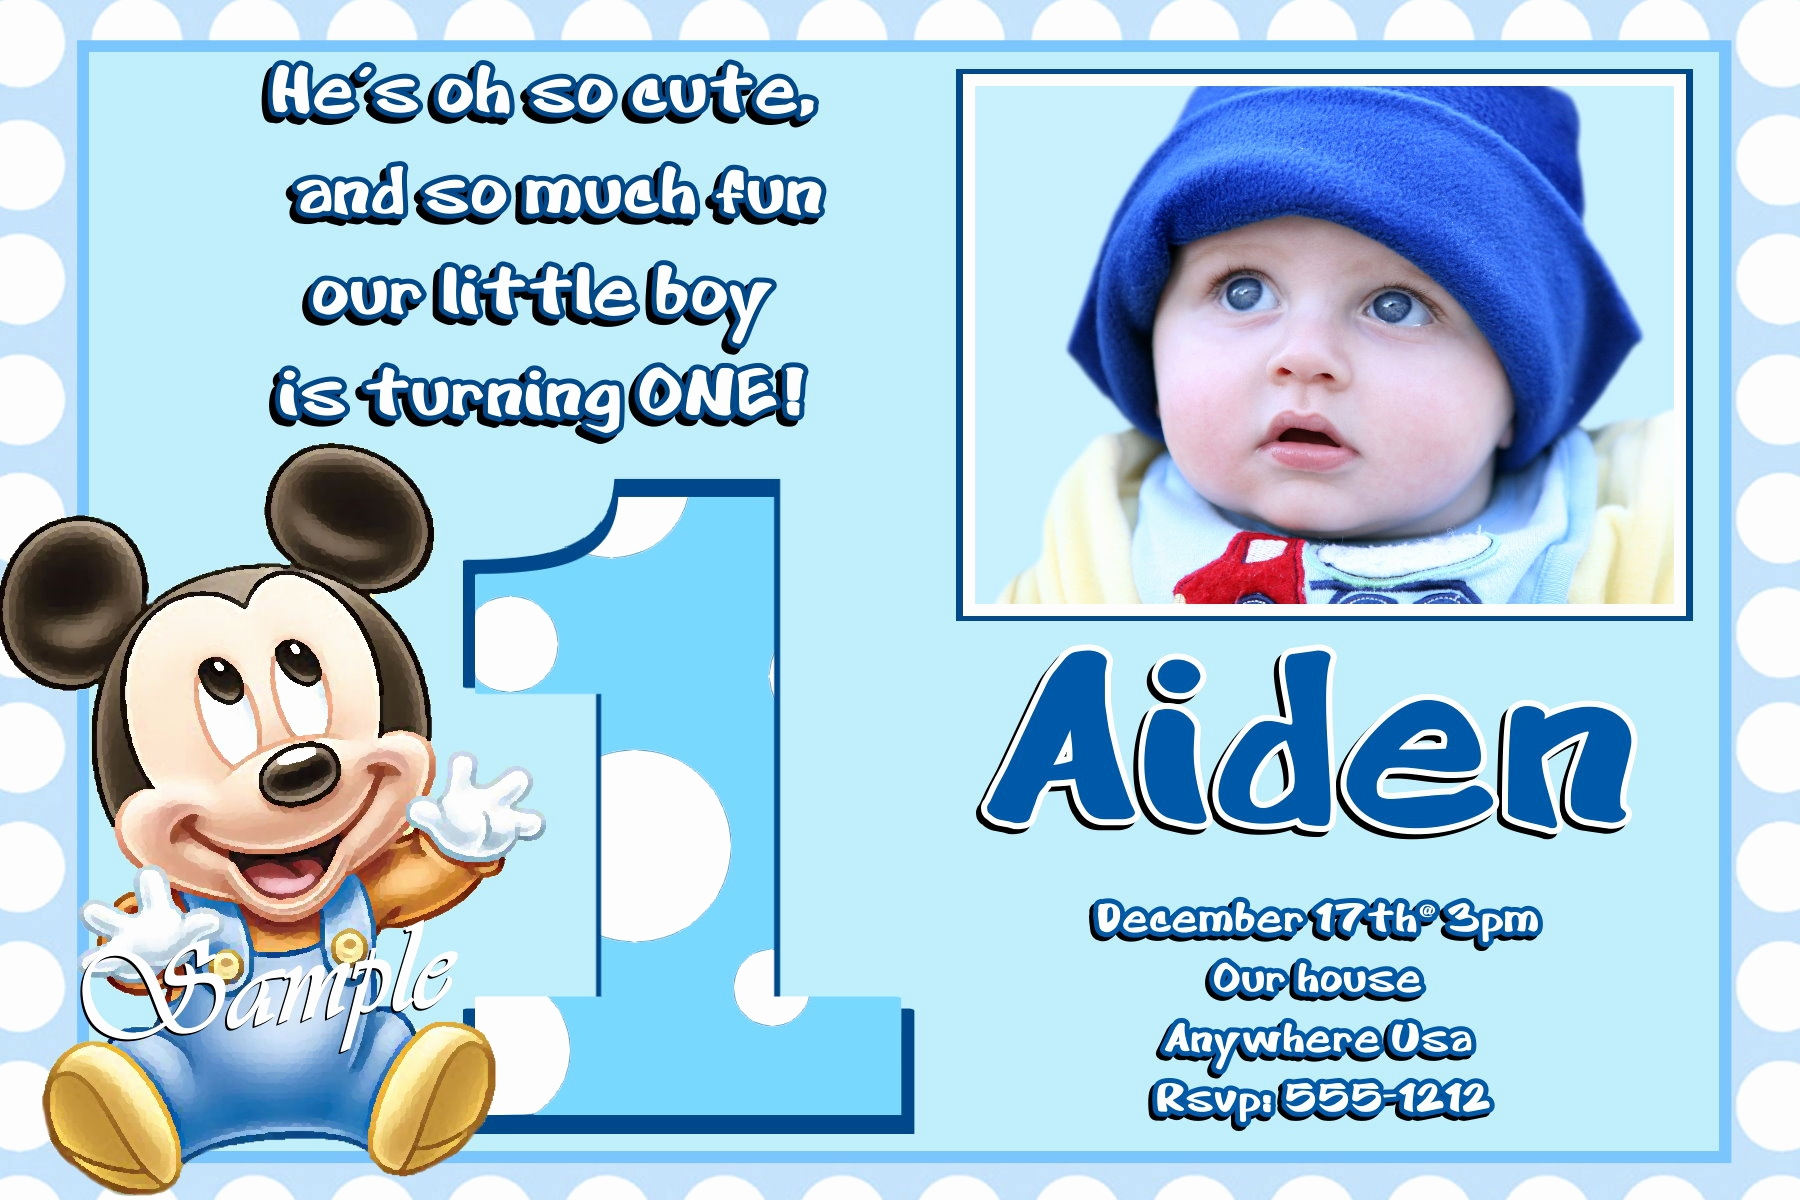 birthday invitation quotes for baby boy ; 3rd-birthday-invitation-wording-fresh-baby-boy-first-birthday-invitation-quotes-unique-the-25-best-1st-of-3rd-birthday-invitation-wording